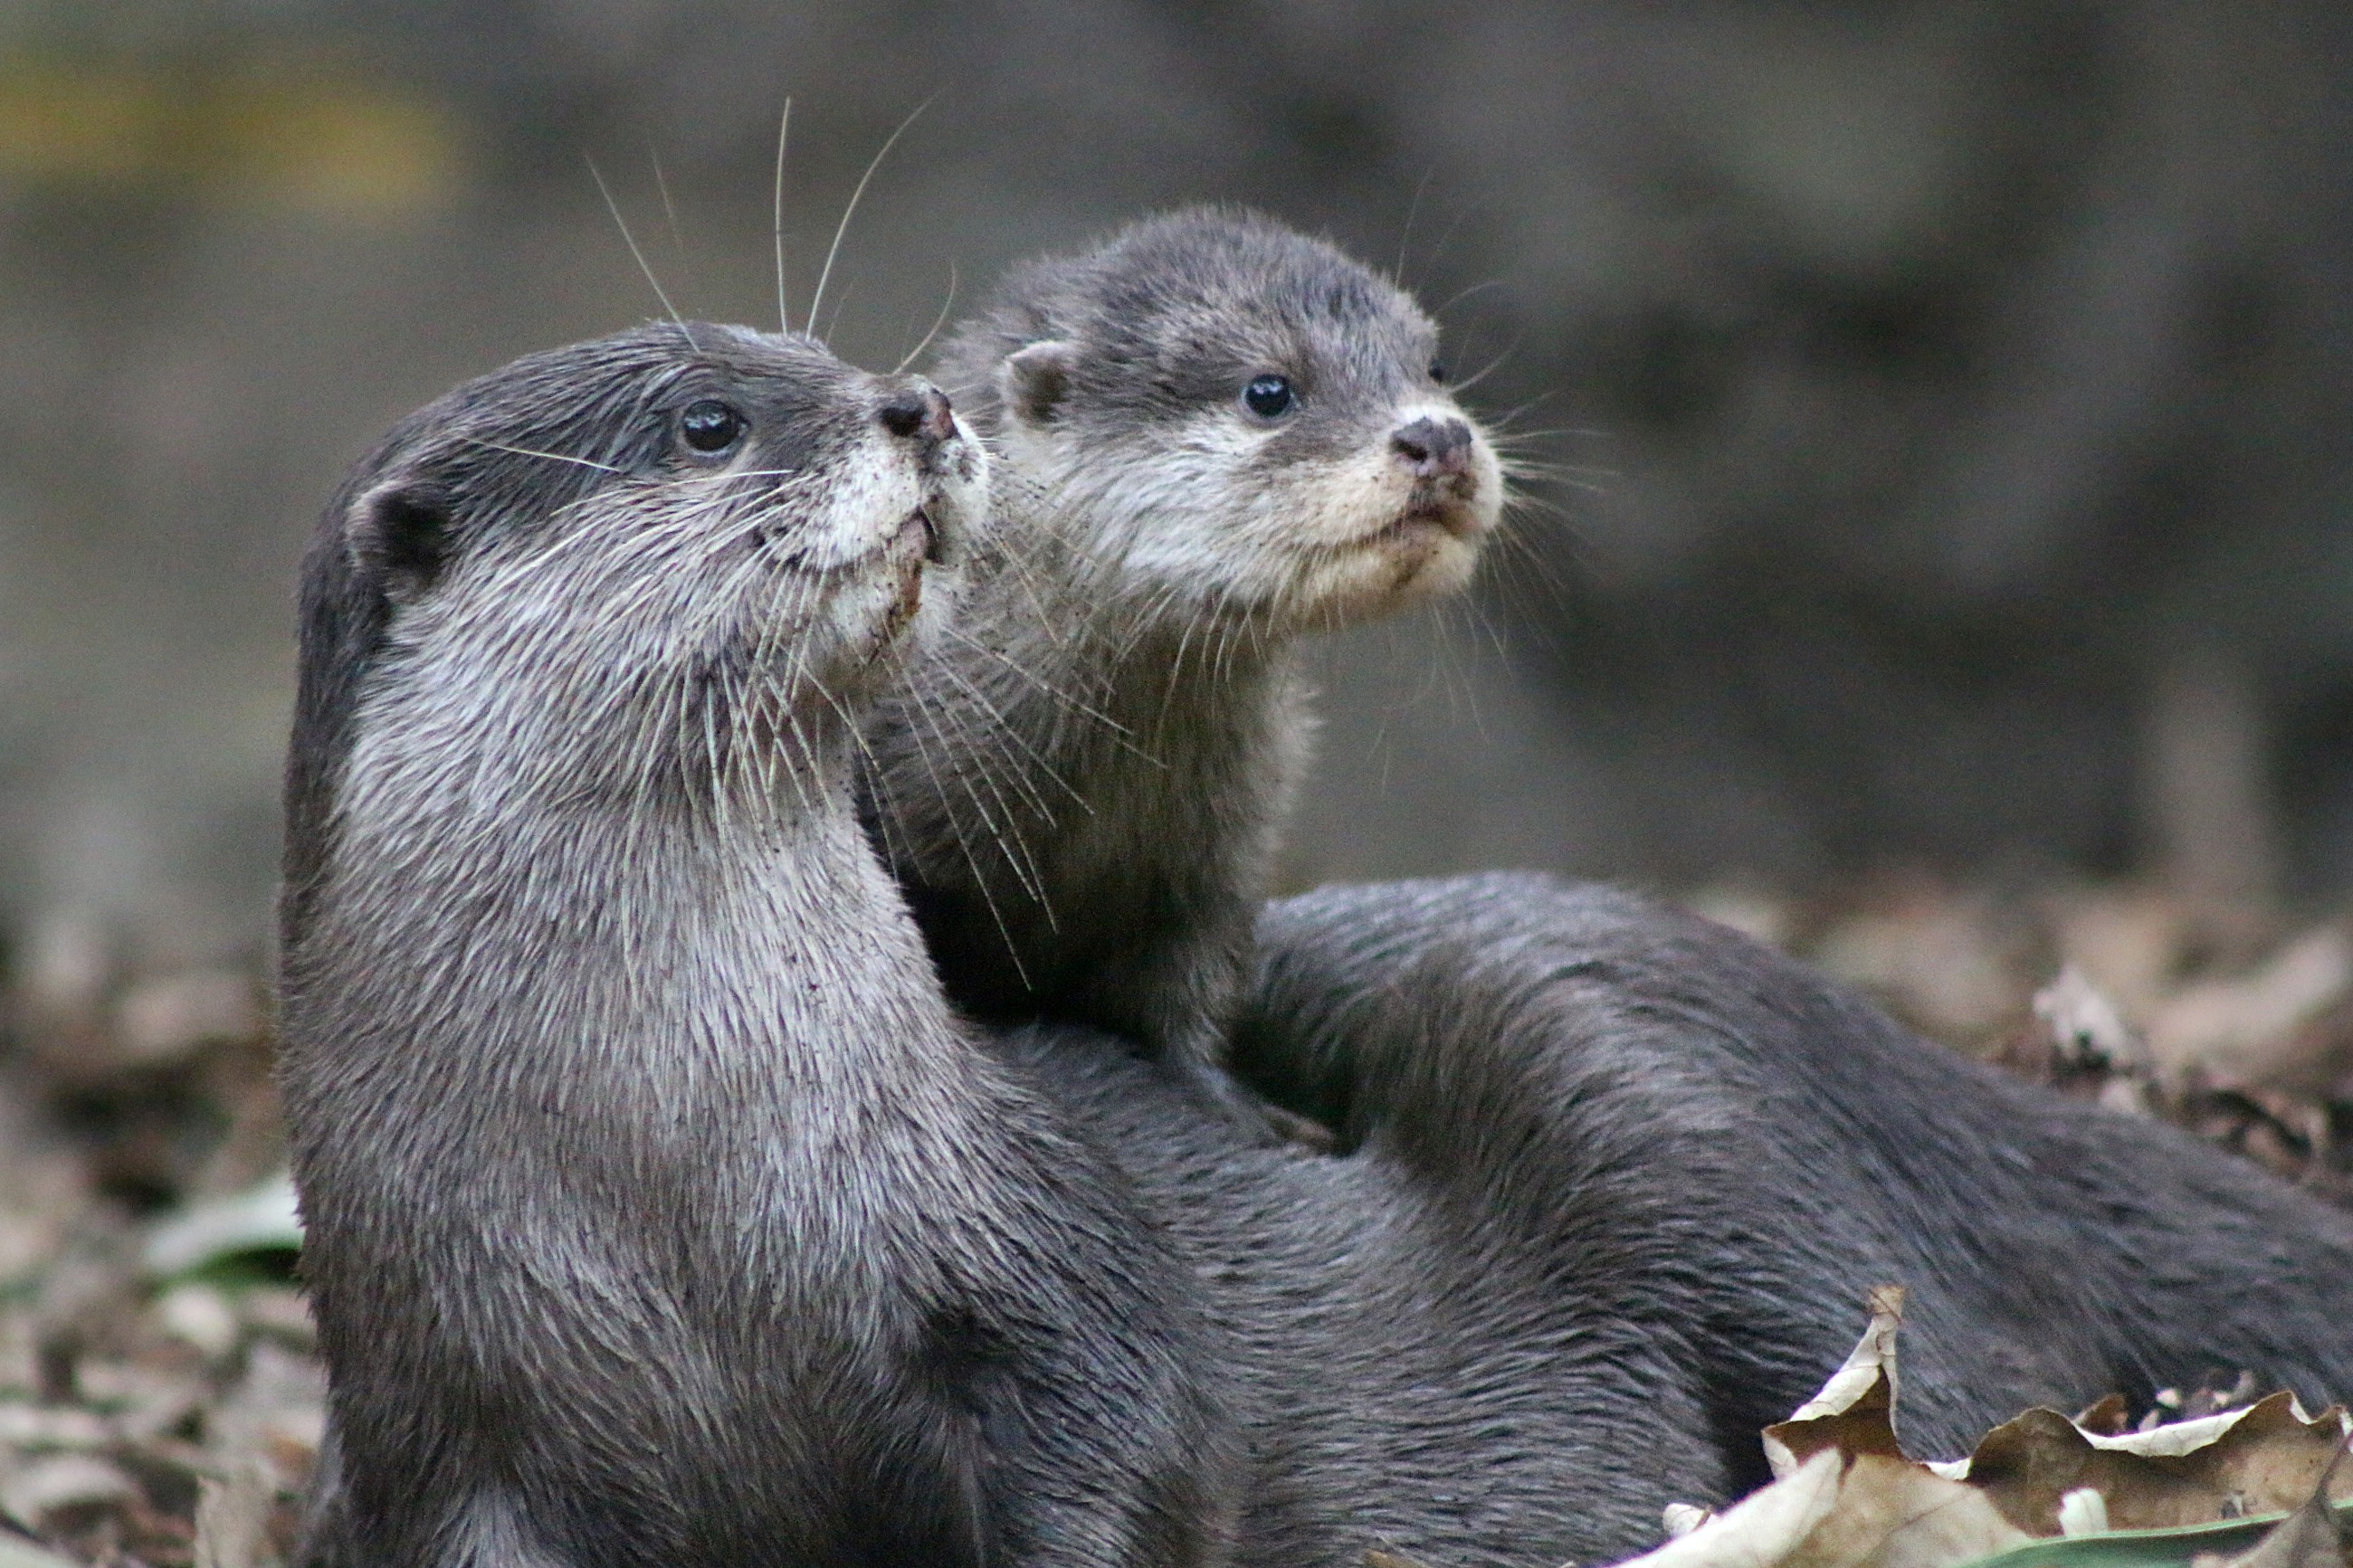 Pet Otter Australia 10 Facts You Might Not Know About The Adorable Otter